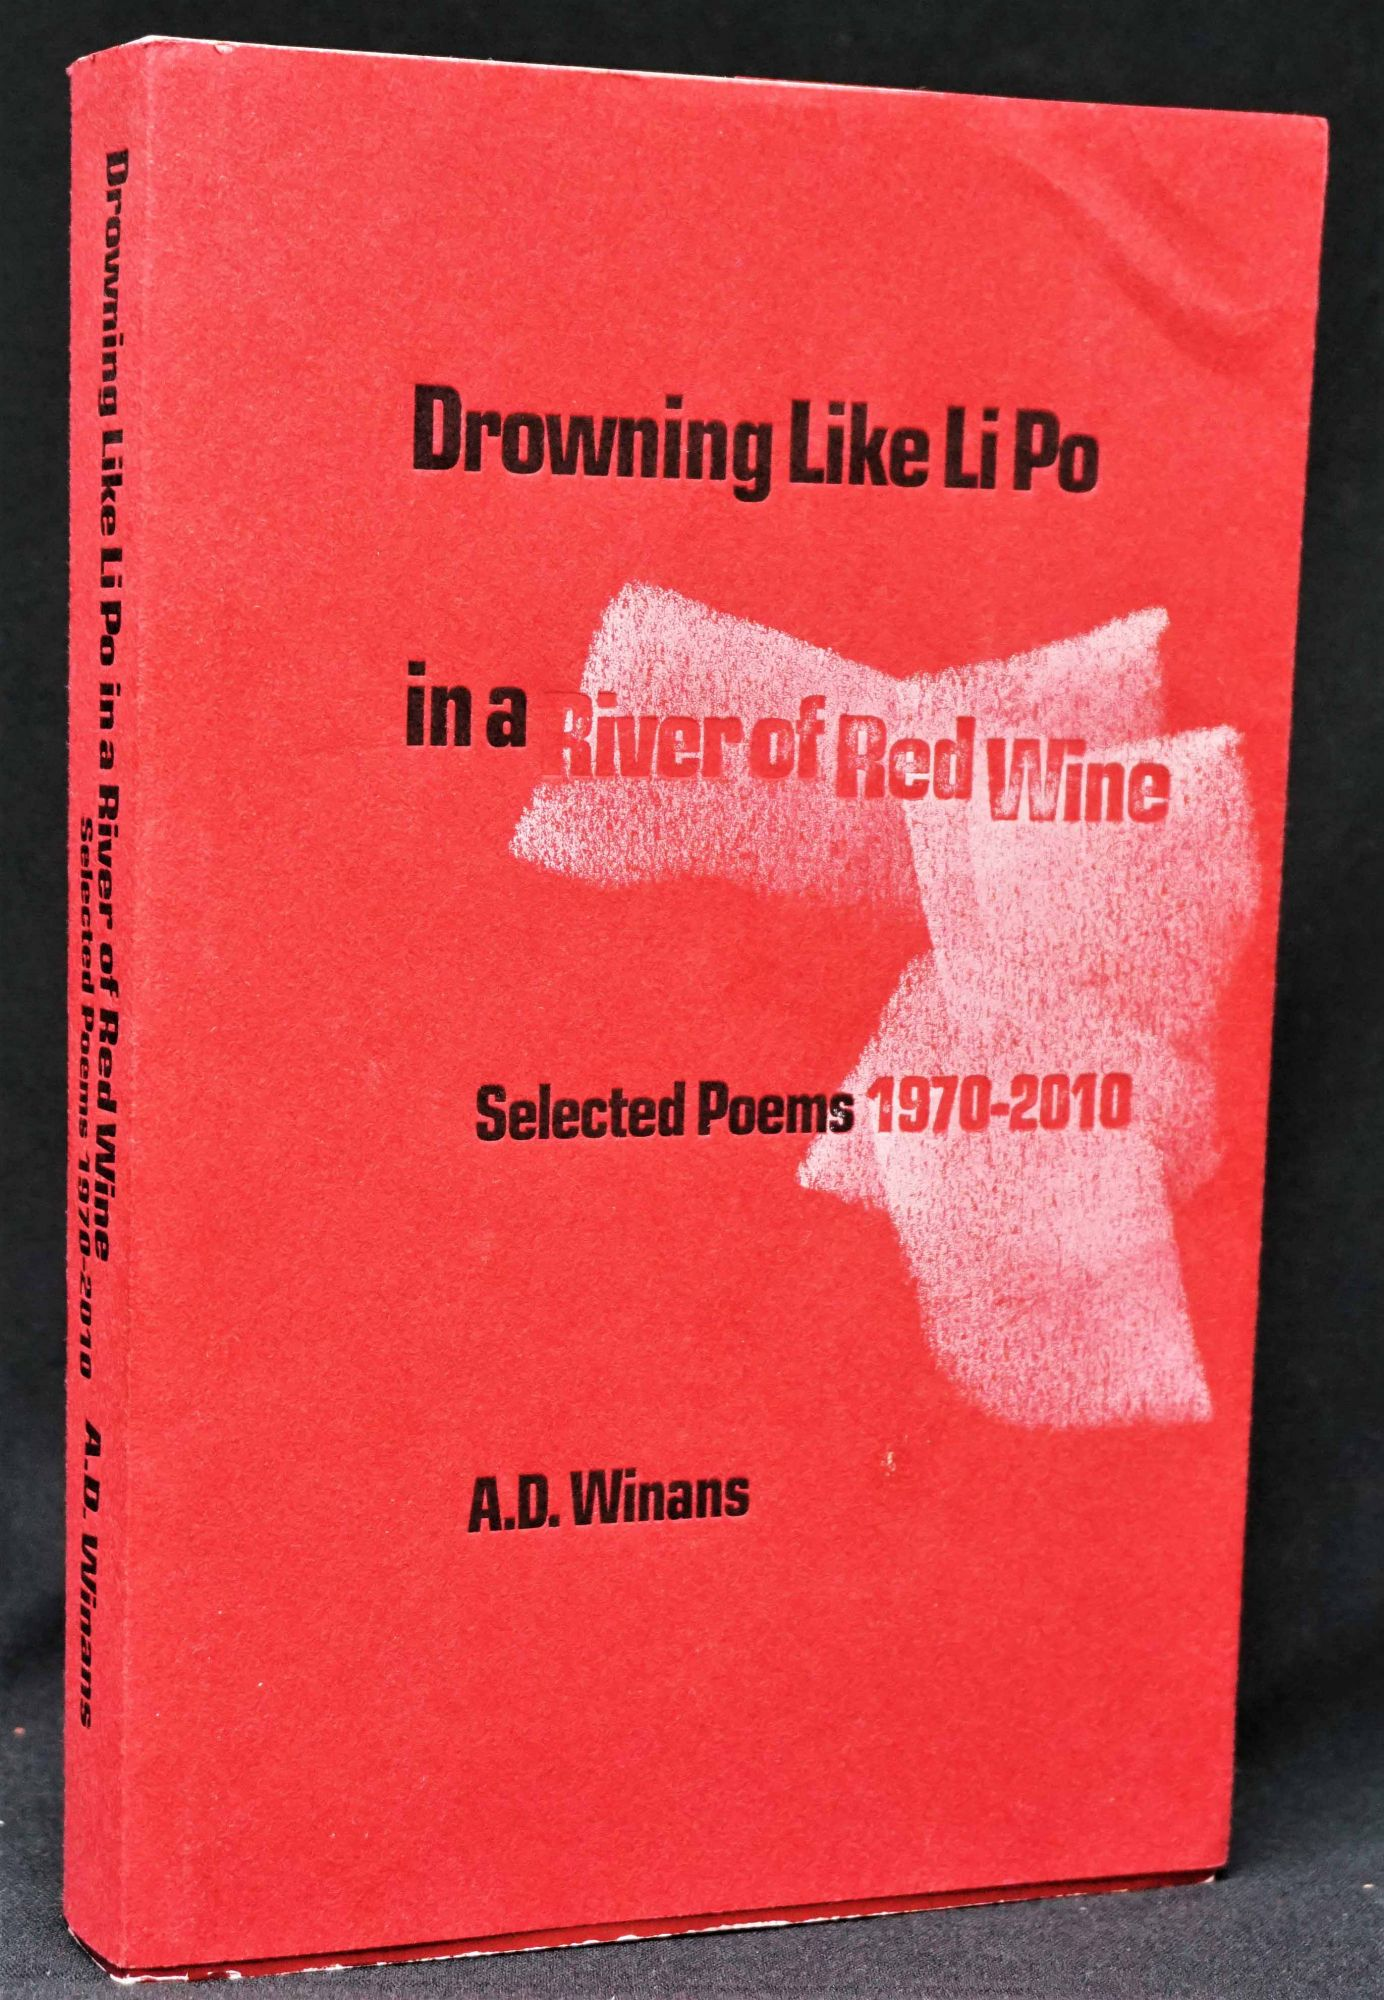 The Selected Poems of Li Po